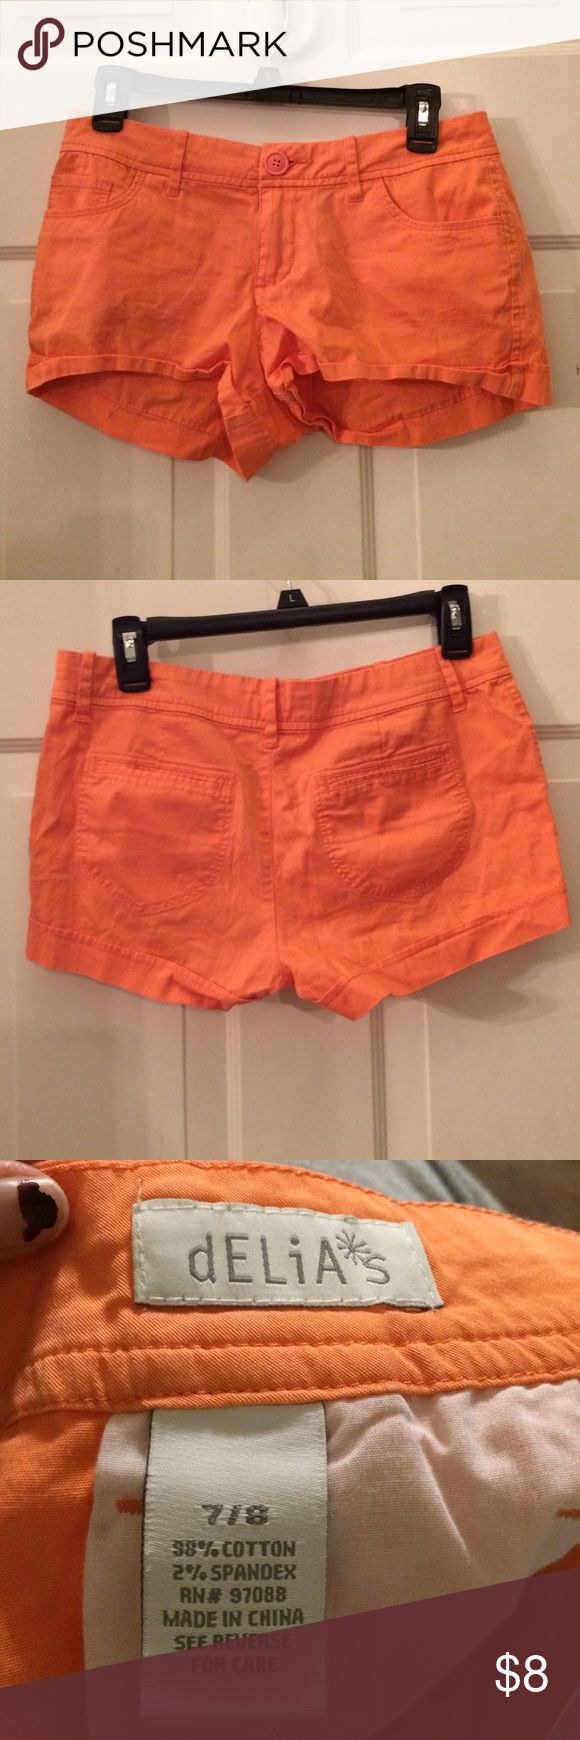 dELiA*s Peach Shorts Peach shorts from dELiA*s. Perfect for spring and summer. Worn once. dELiA*s Shorts Jean Shorts